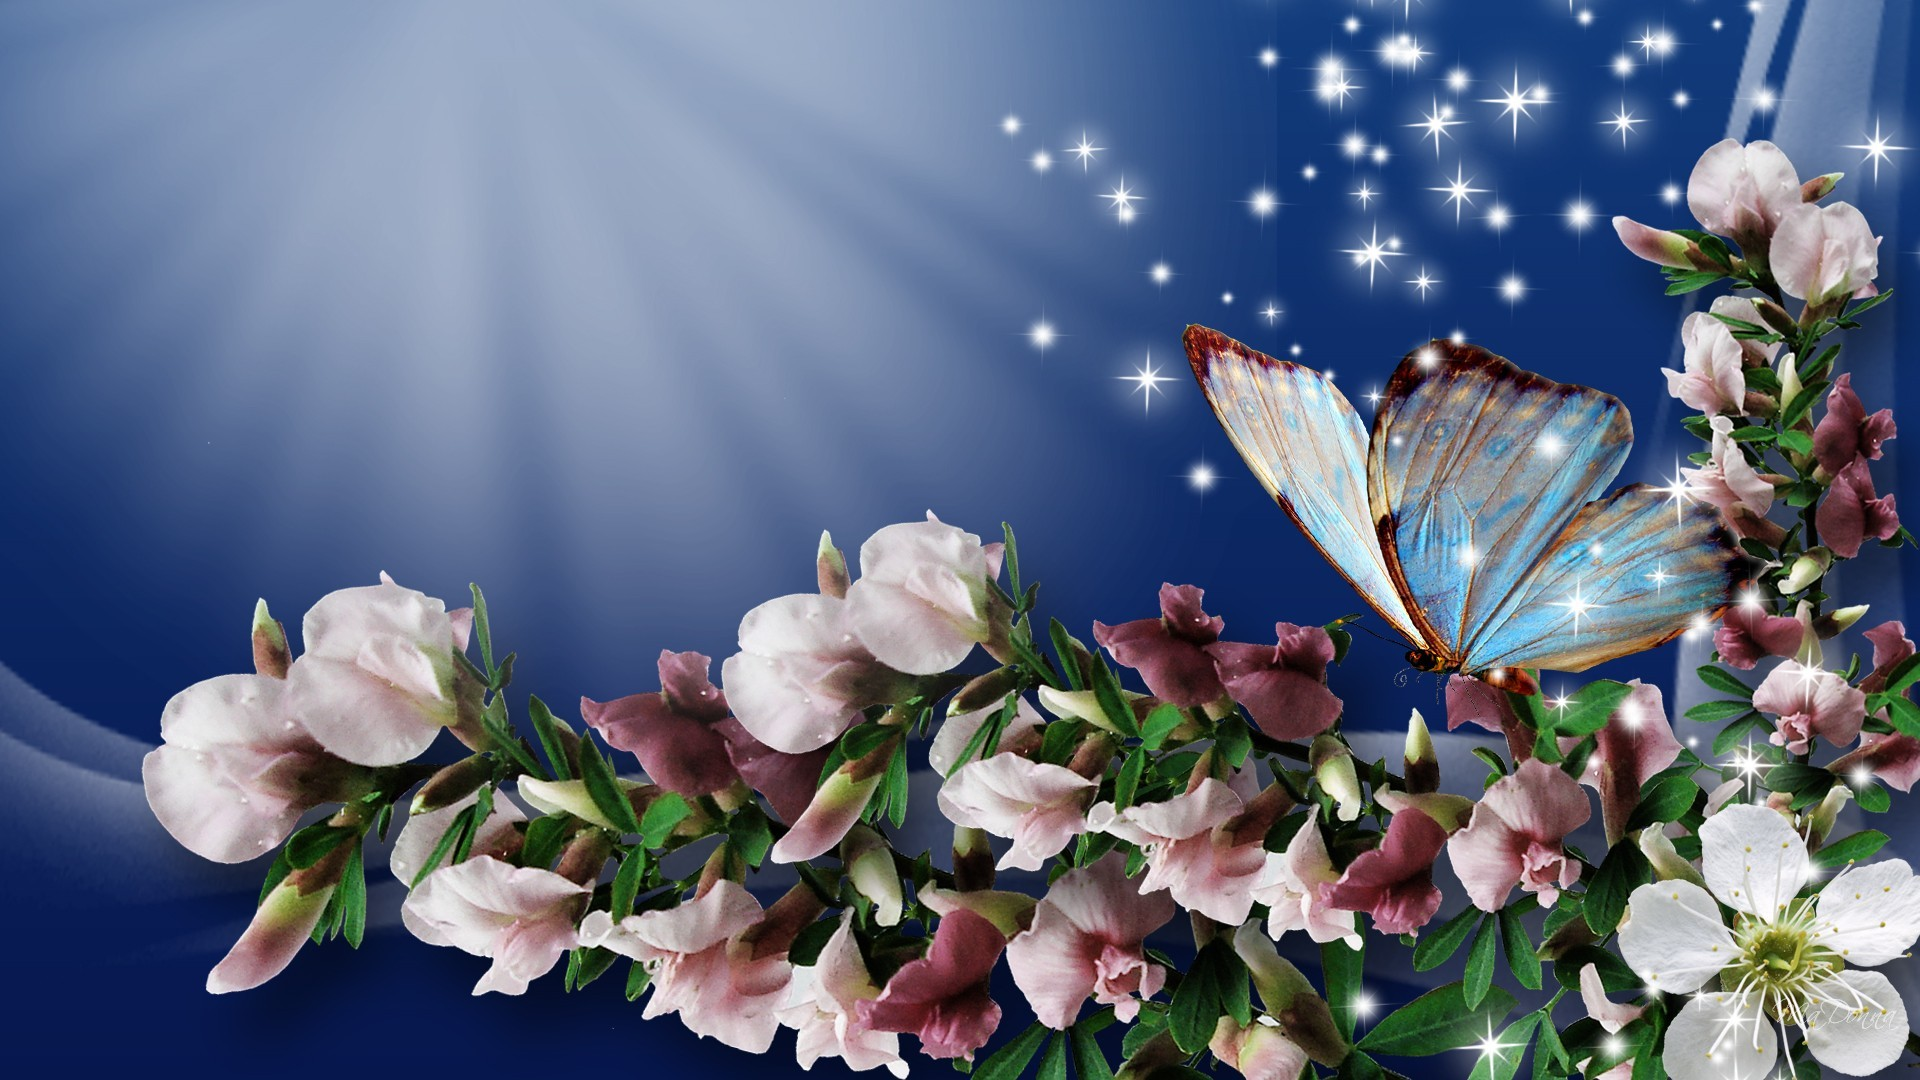 the spring wallpapers category of free hd wallpapers desktop spring .